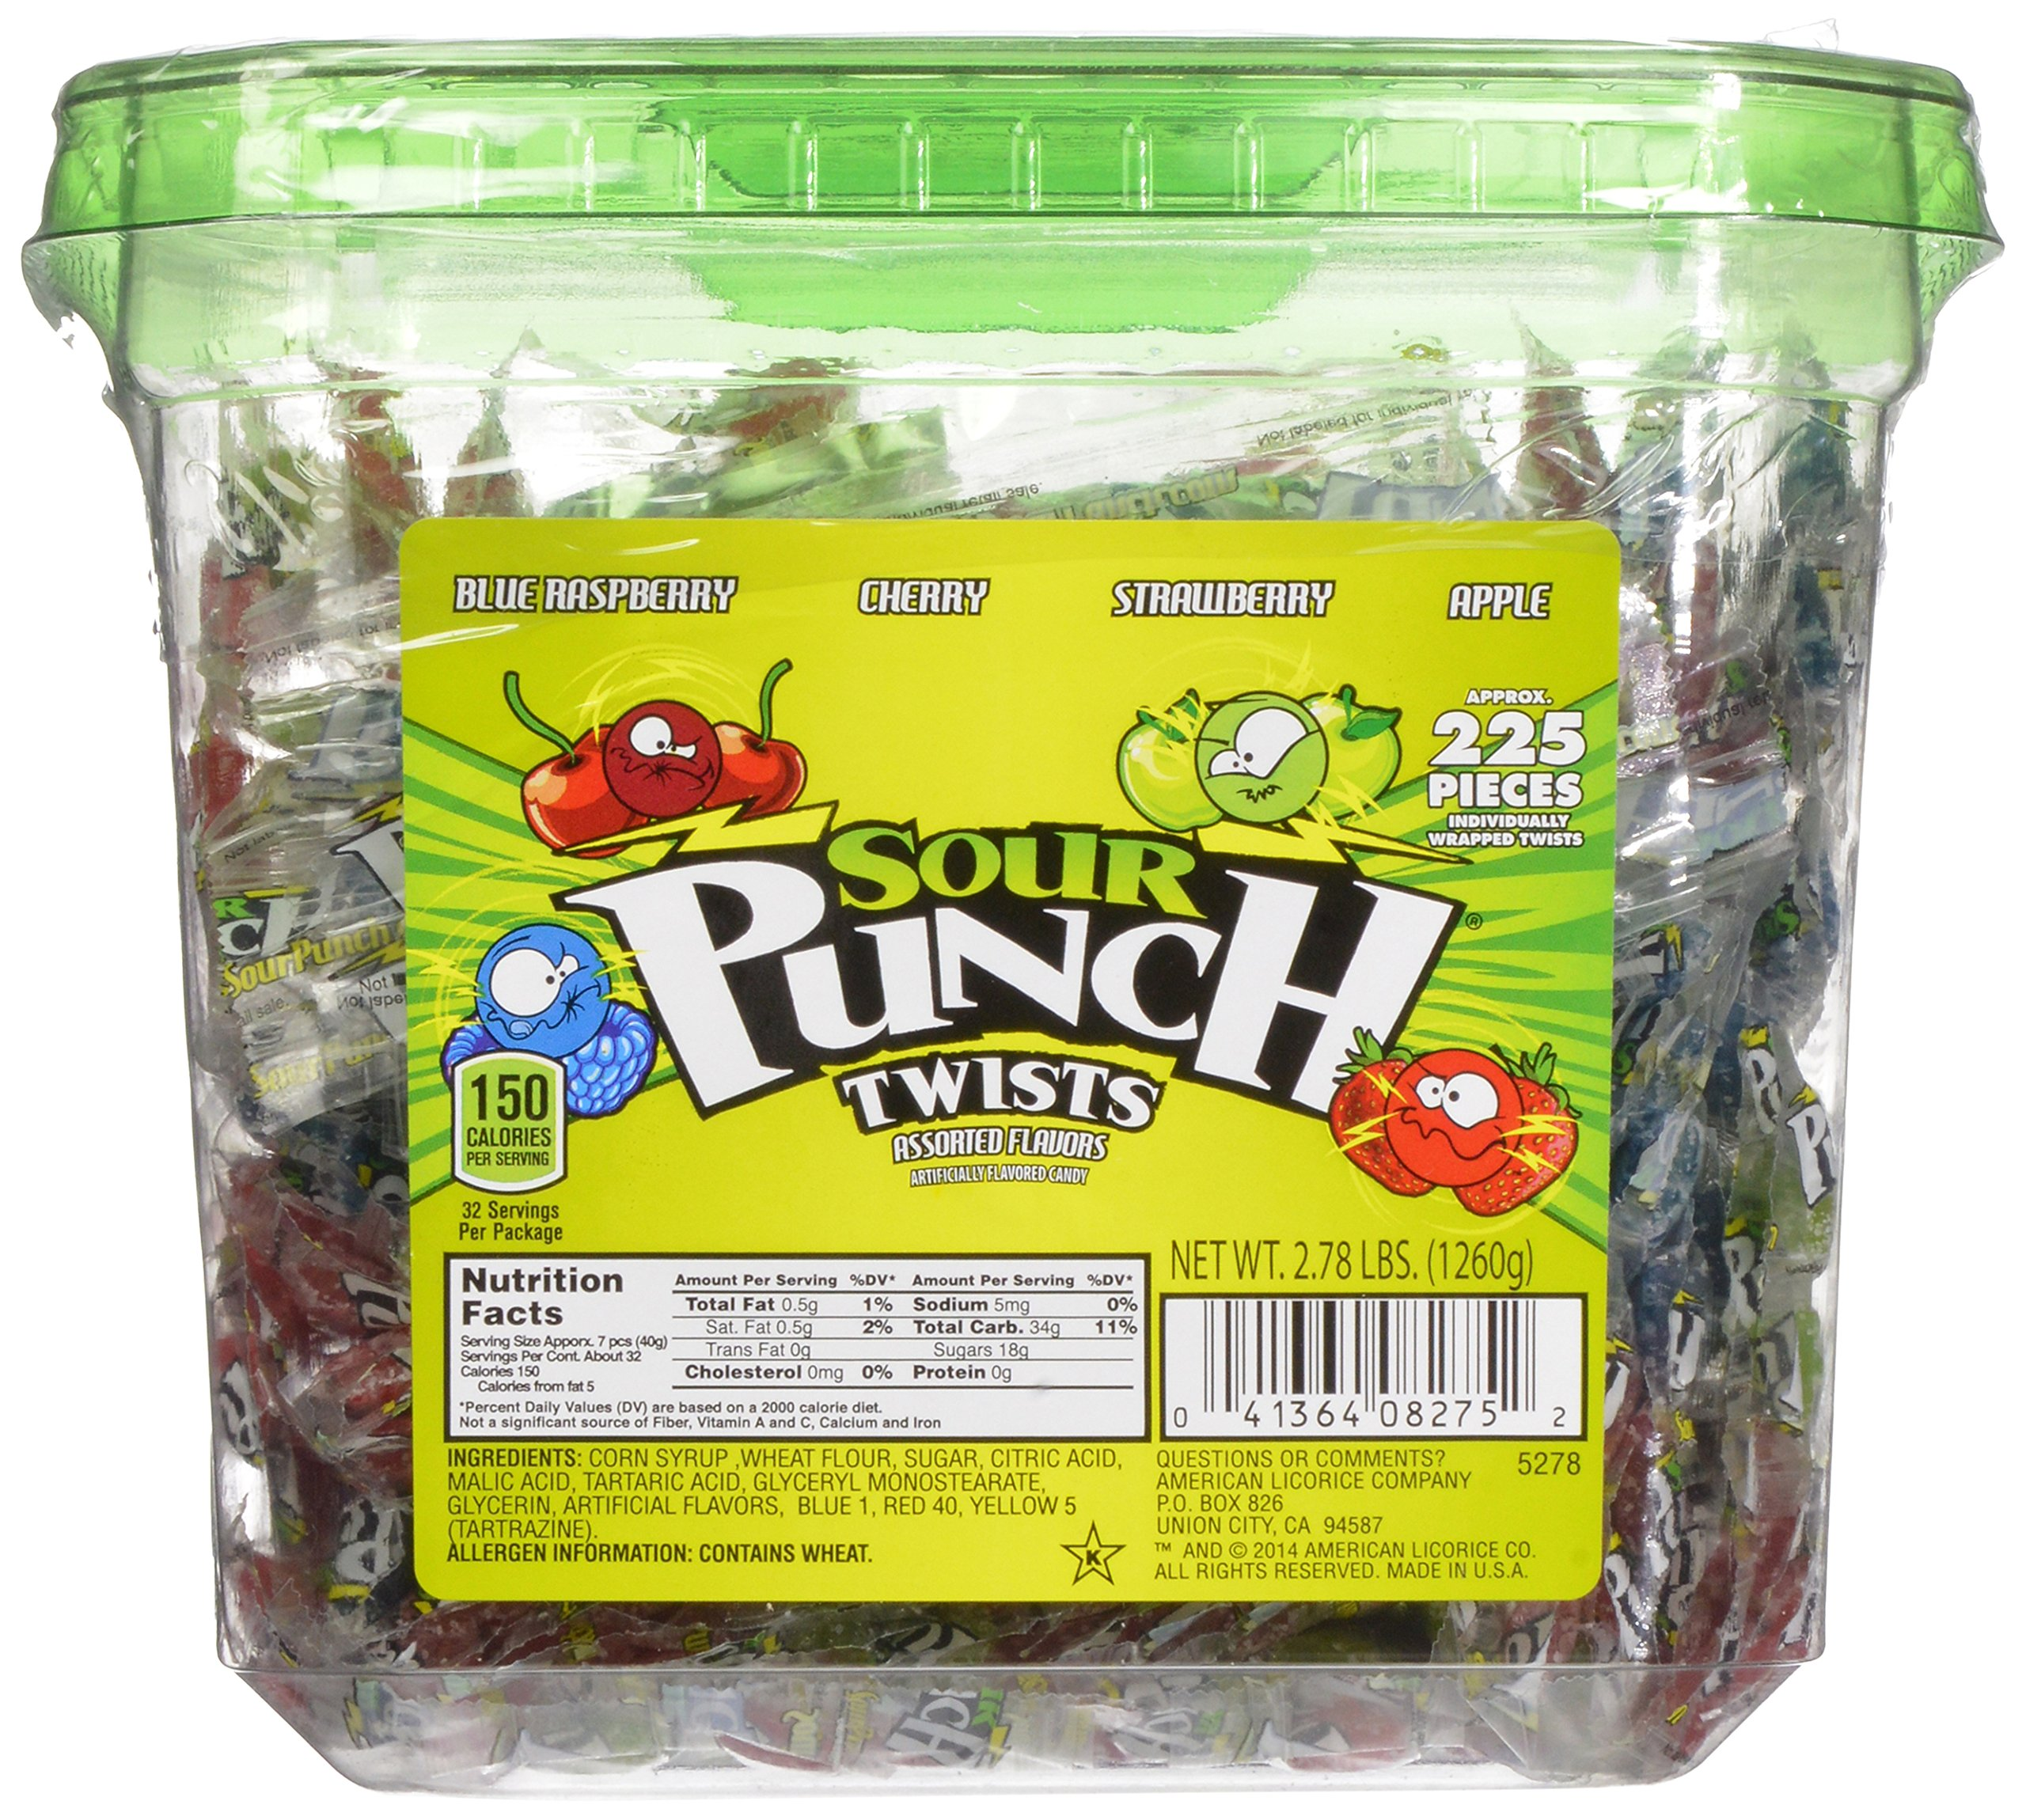 Sour Punch Twists, 4-Flavor Variety Pack, 44.48-Ounce Tubs (Pack of 2) by Sour Punch